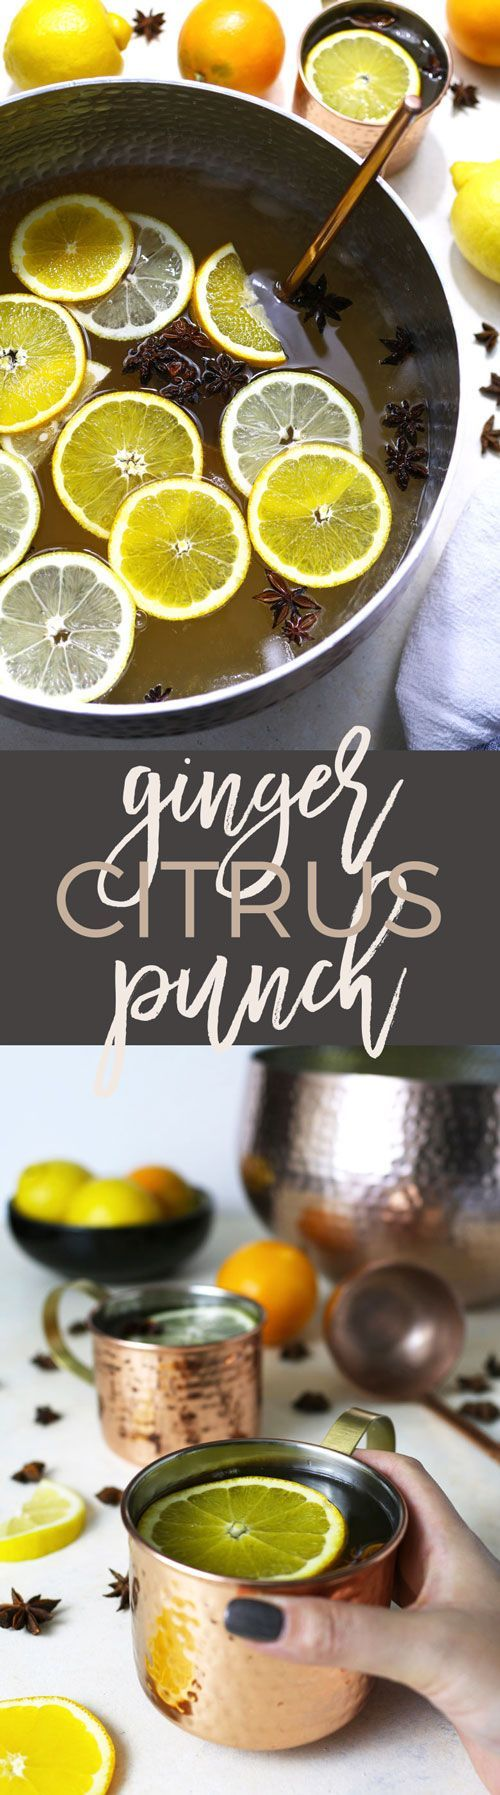 This ginger citrus punch recipe is VERY easy to make and it's perfect for all parties! Whether it's Christmas, New Year's Eve, weddings or a birthday party, this is going to be your new go-to big batch cocktail.